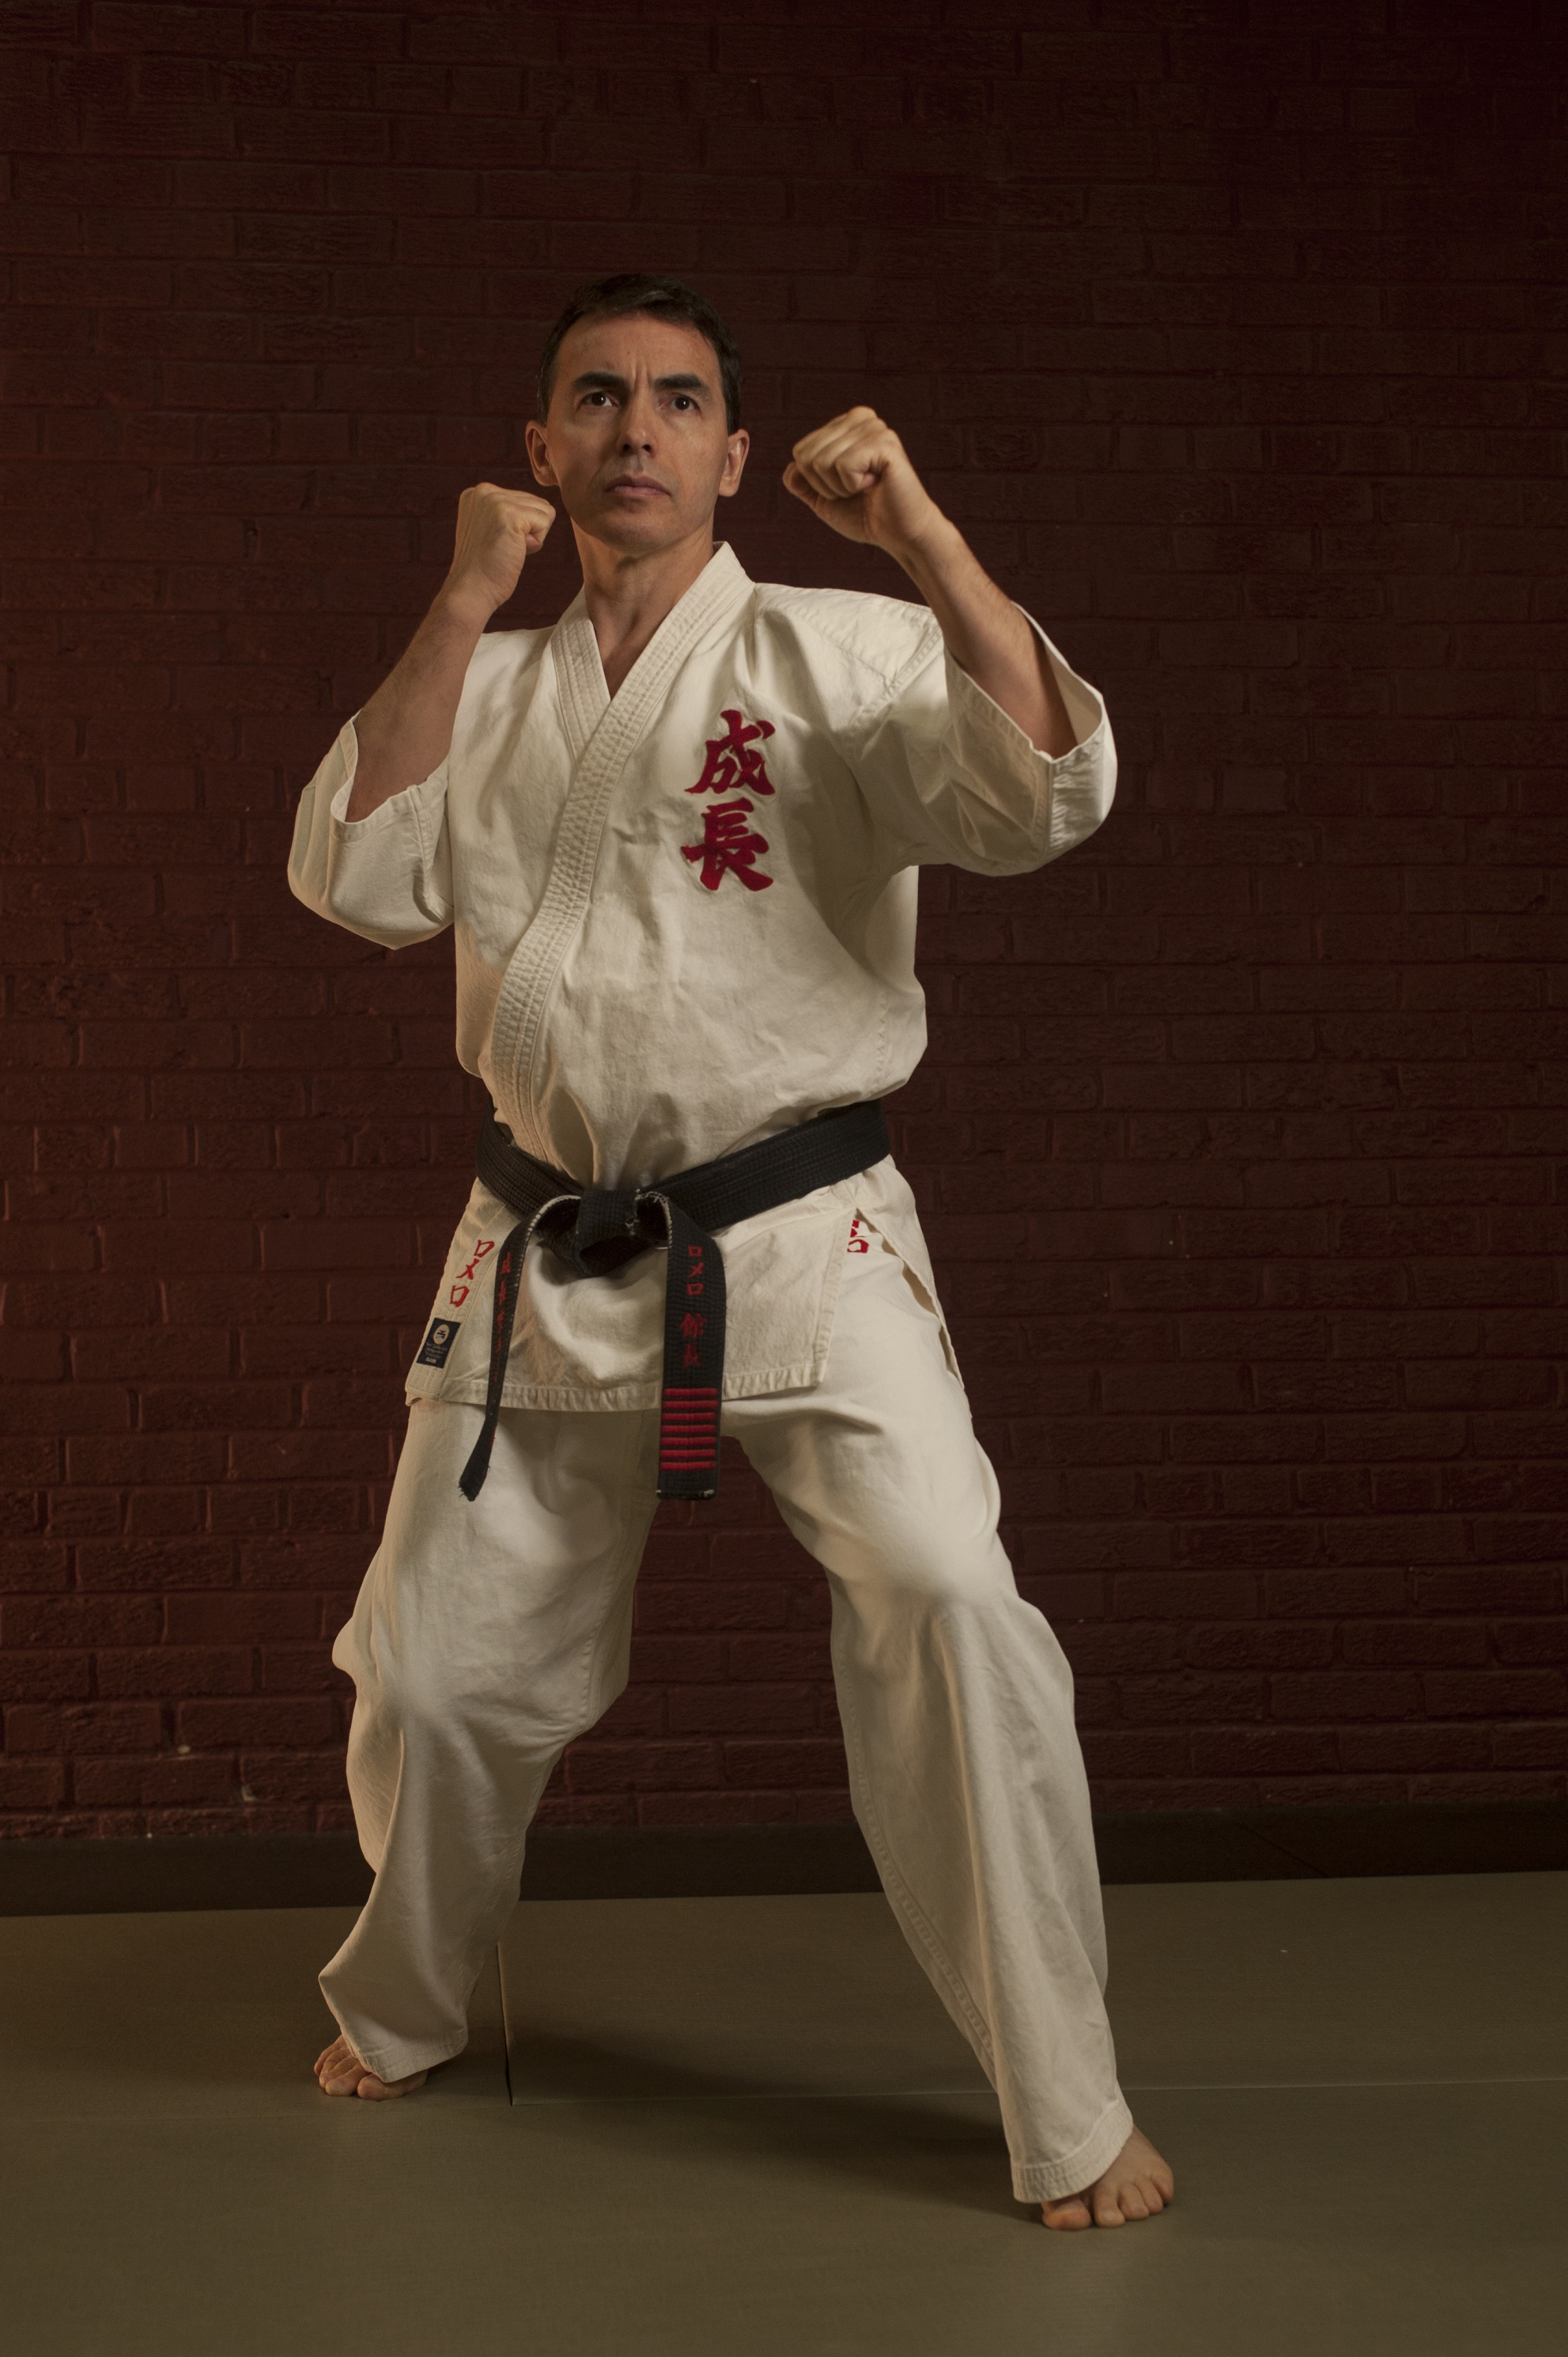 shihan fighting stance